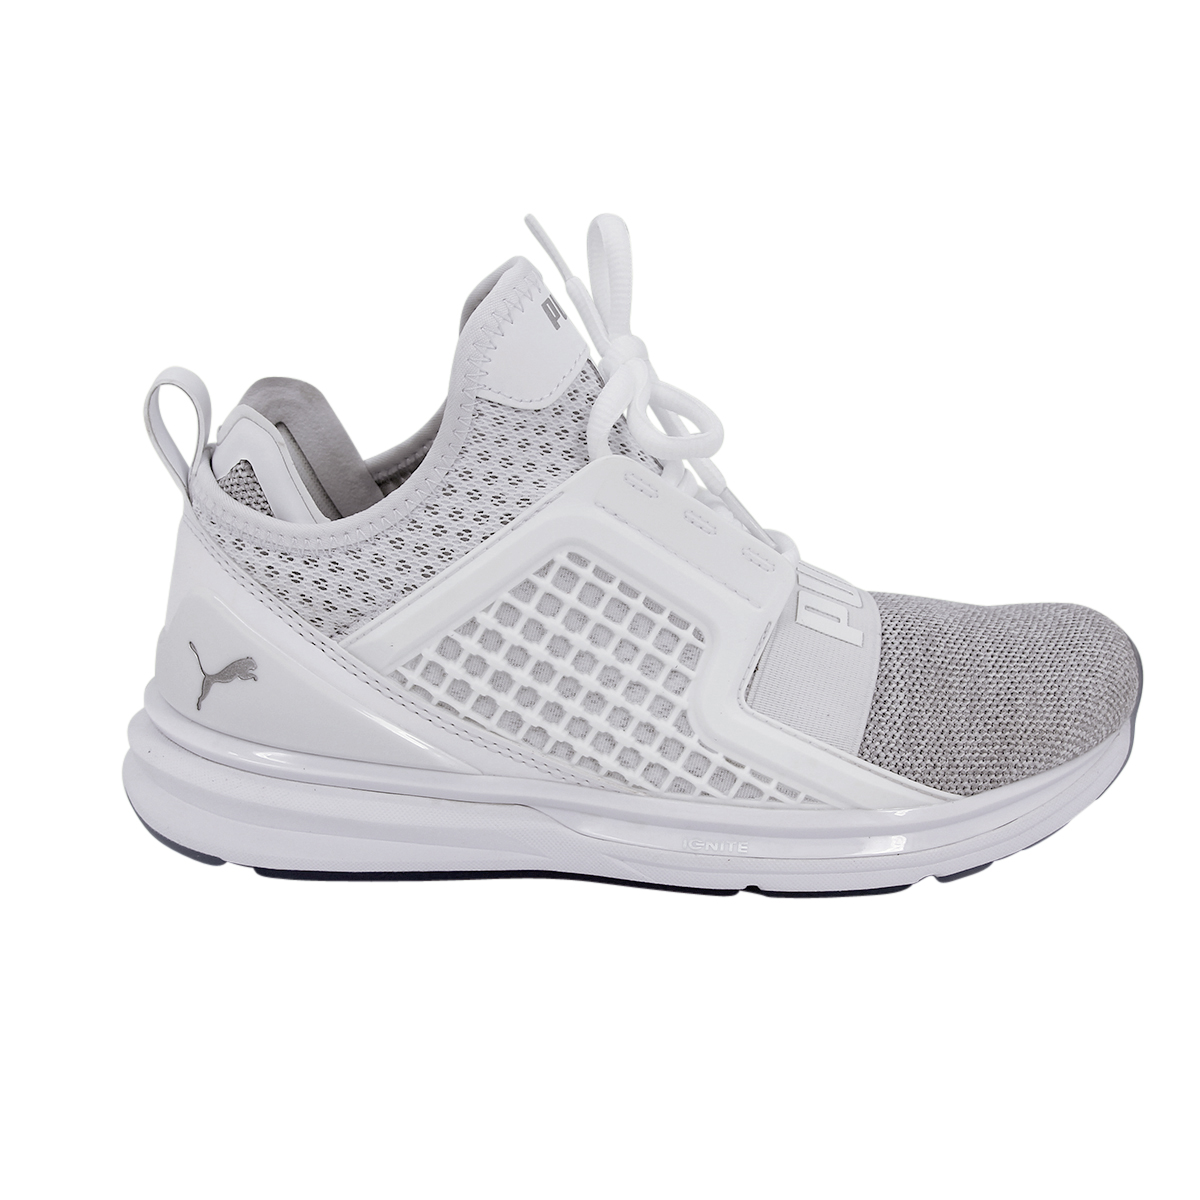 9741cd3e919274 PUMA Ignite Limitless Knit White Silver Men Running Shoes Trainers 18998705  UK 8. About this product. Picture 1 of 12 ...